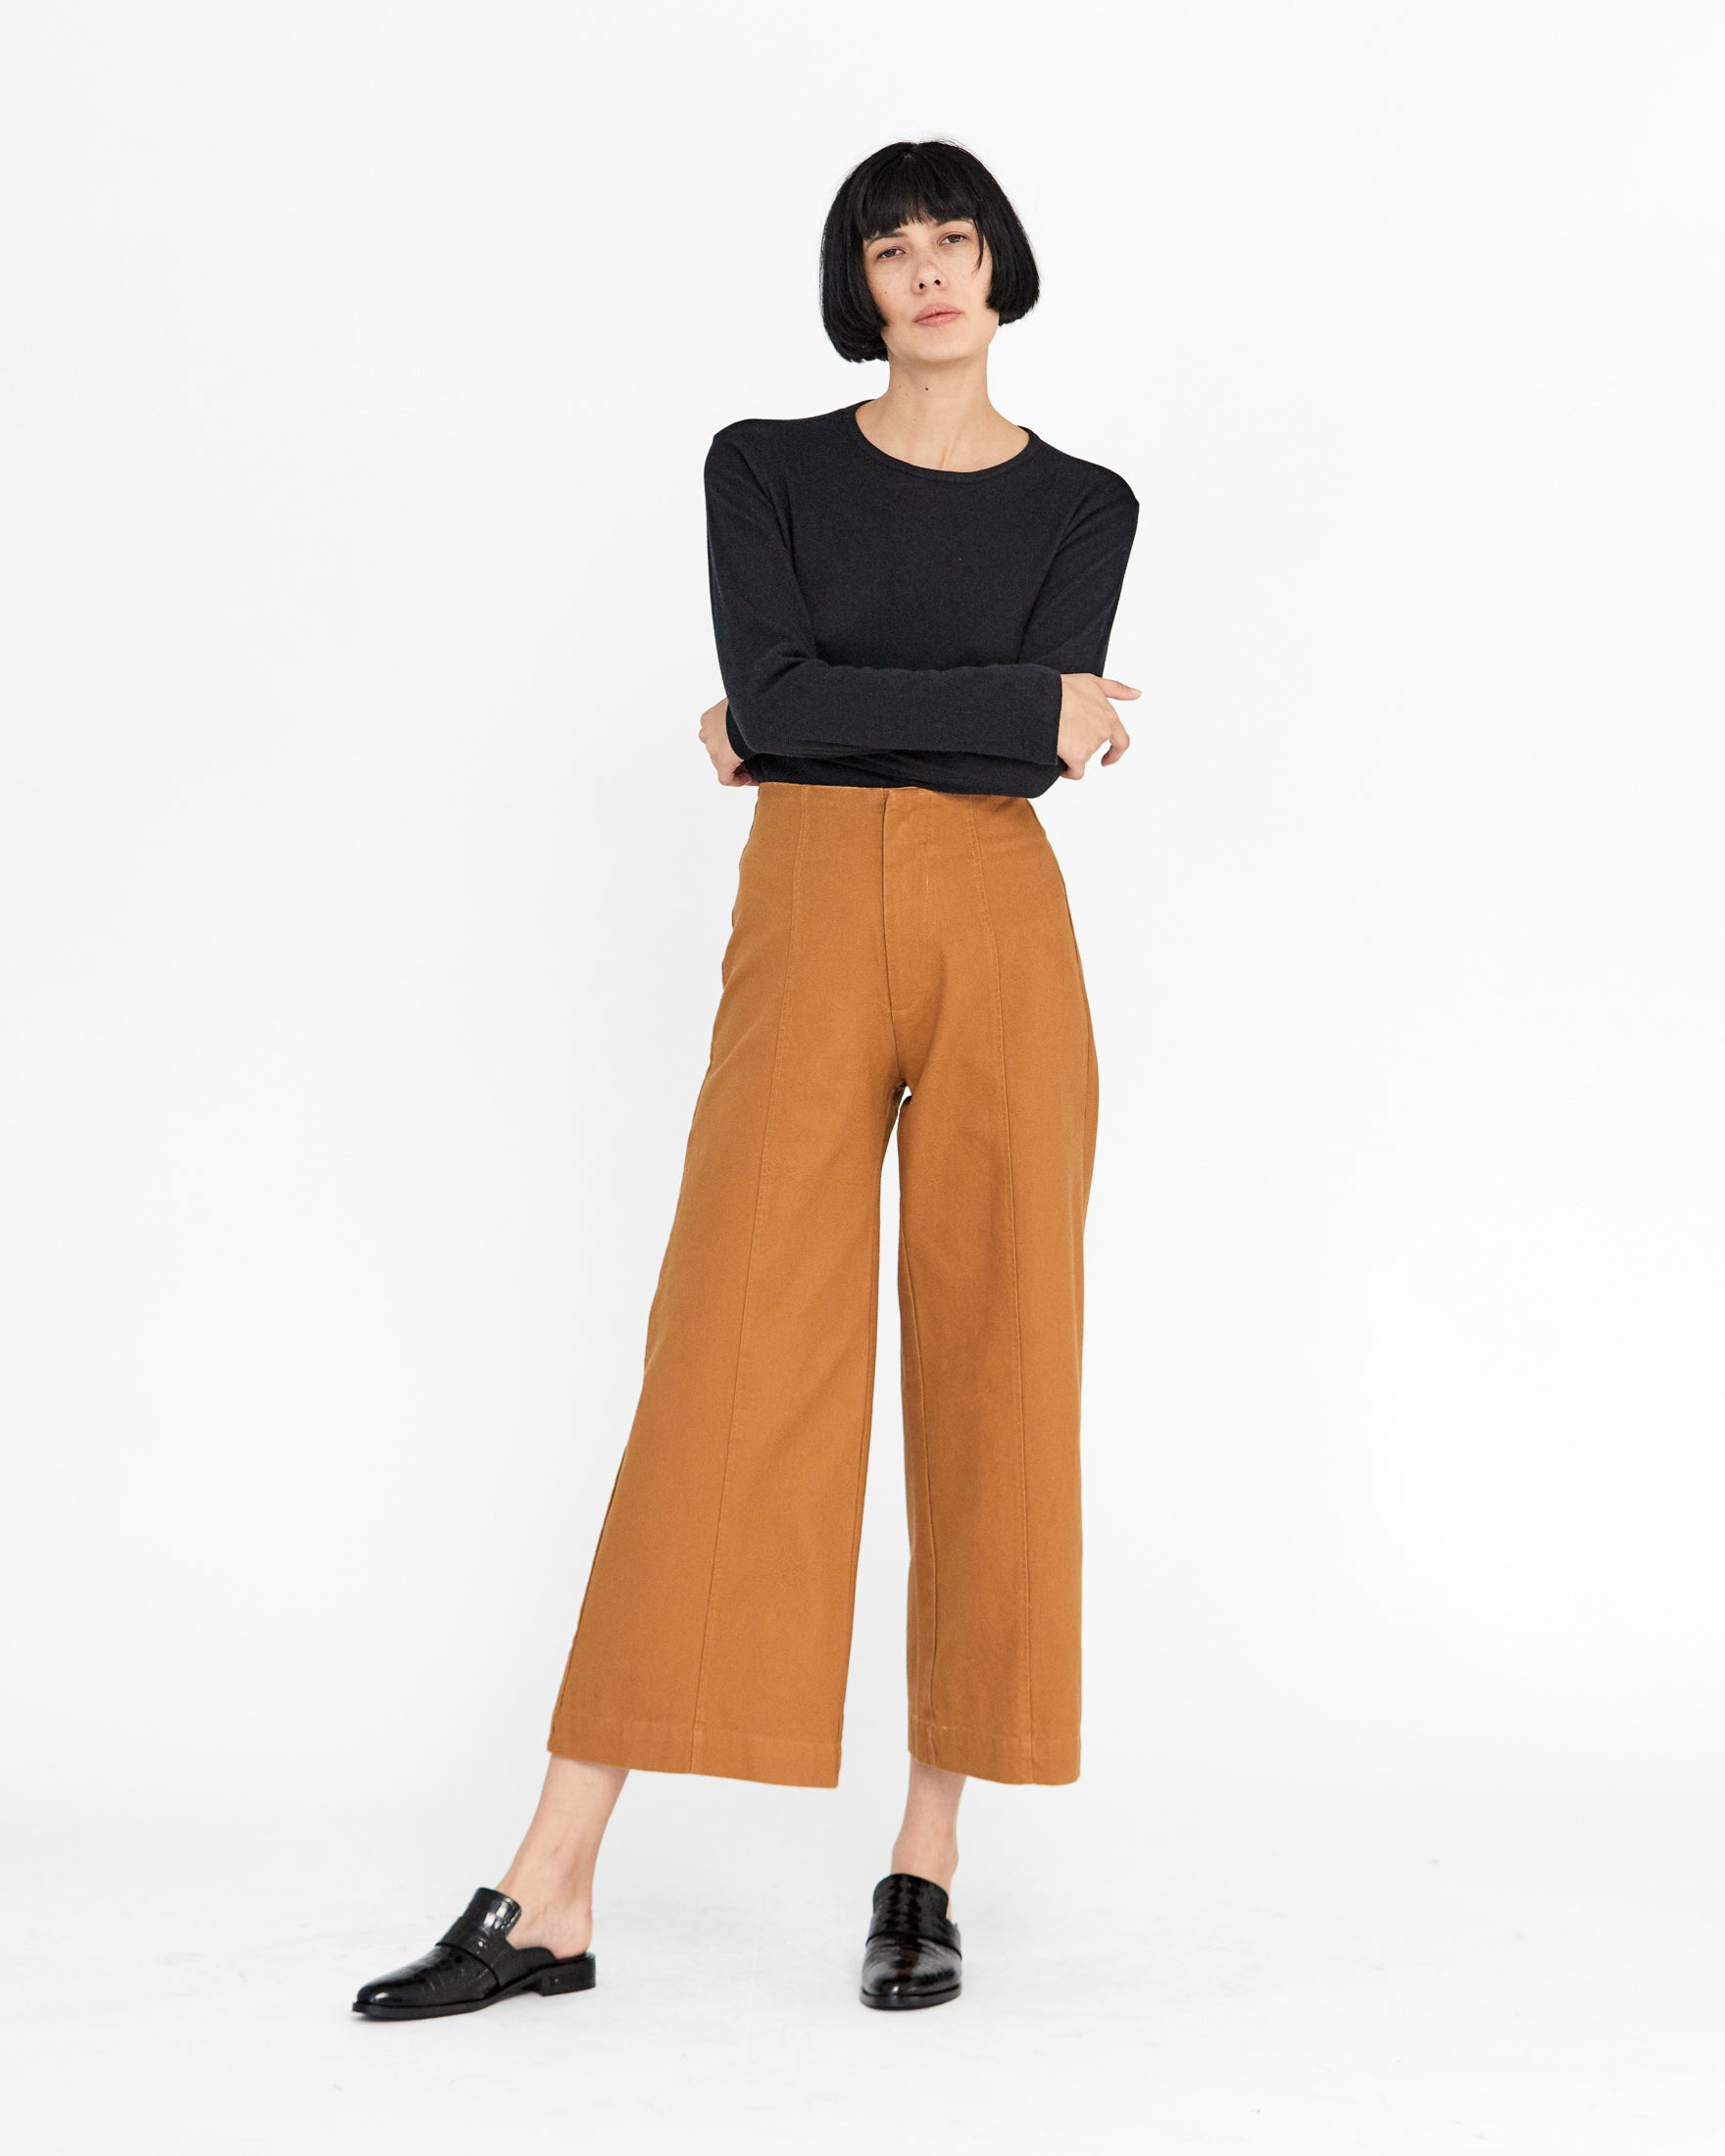 LUCIA ANKLE PANT - CLOVE